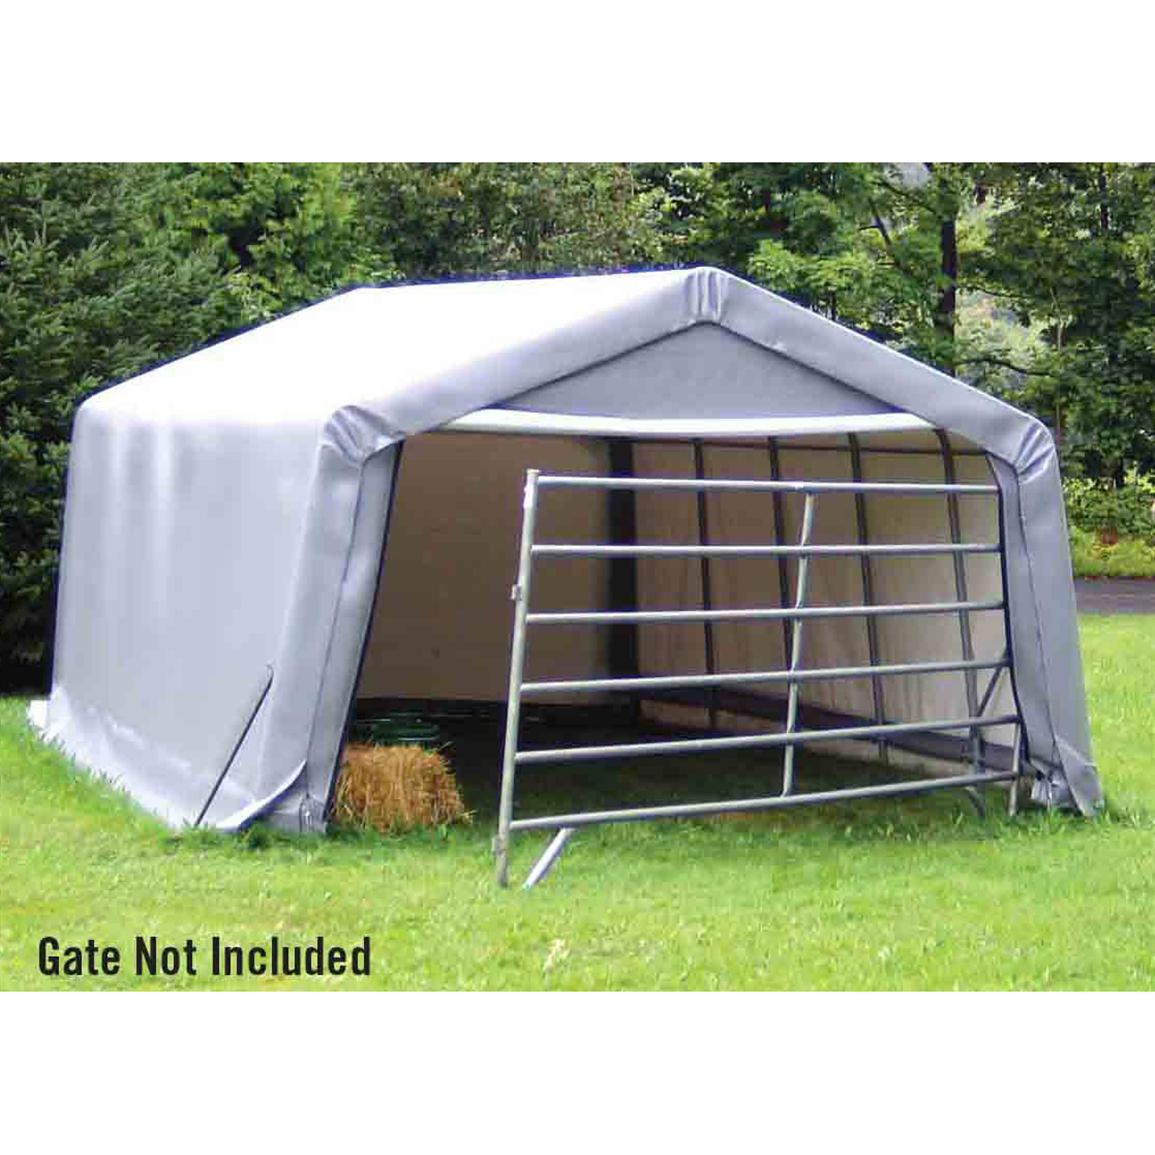 Shelter Logic 12x20x8' Peak Style Storage Shelter